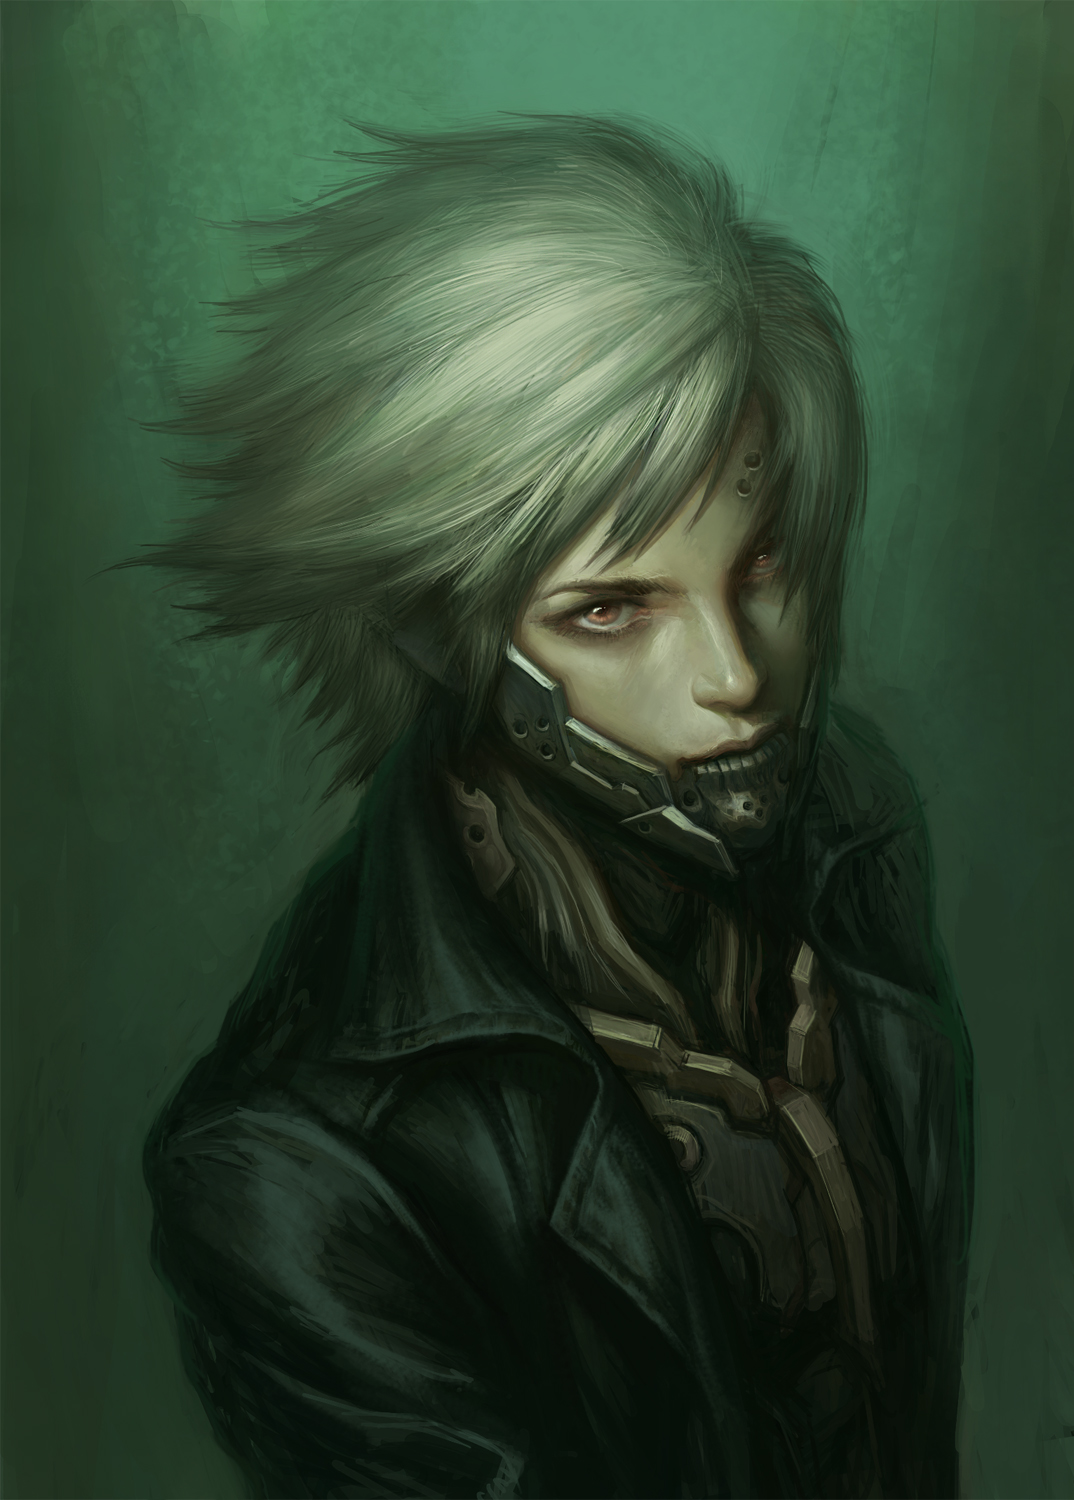 Metal gear solid mobile wallpaper zerochan anime image board raiden download raiden image voltagebd